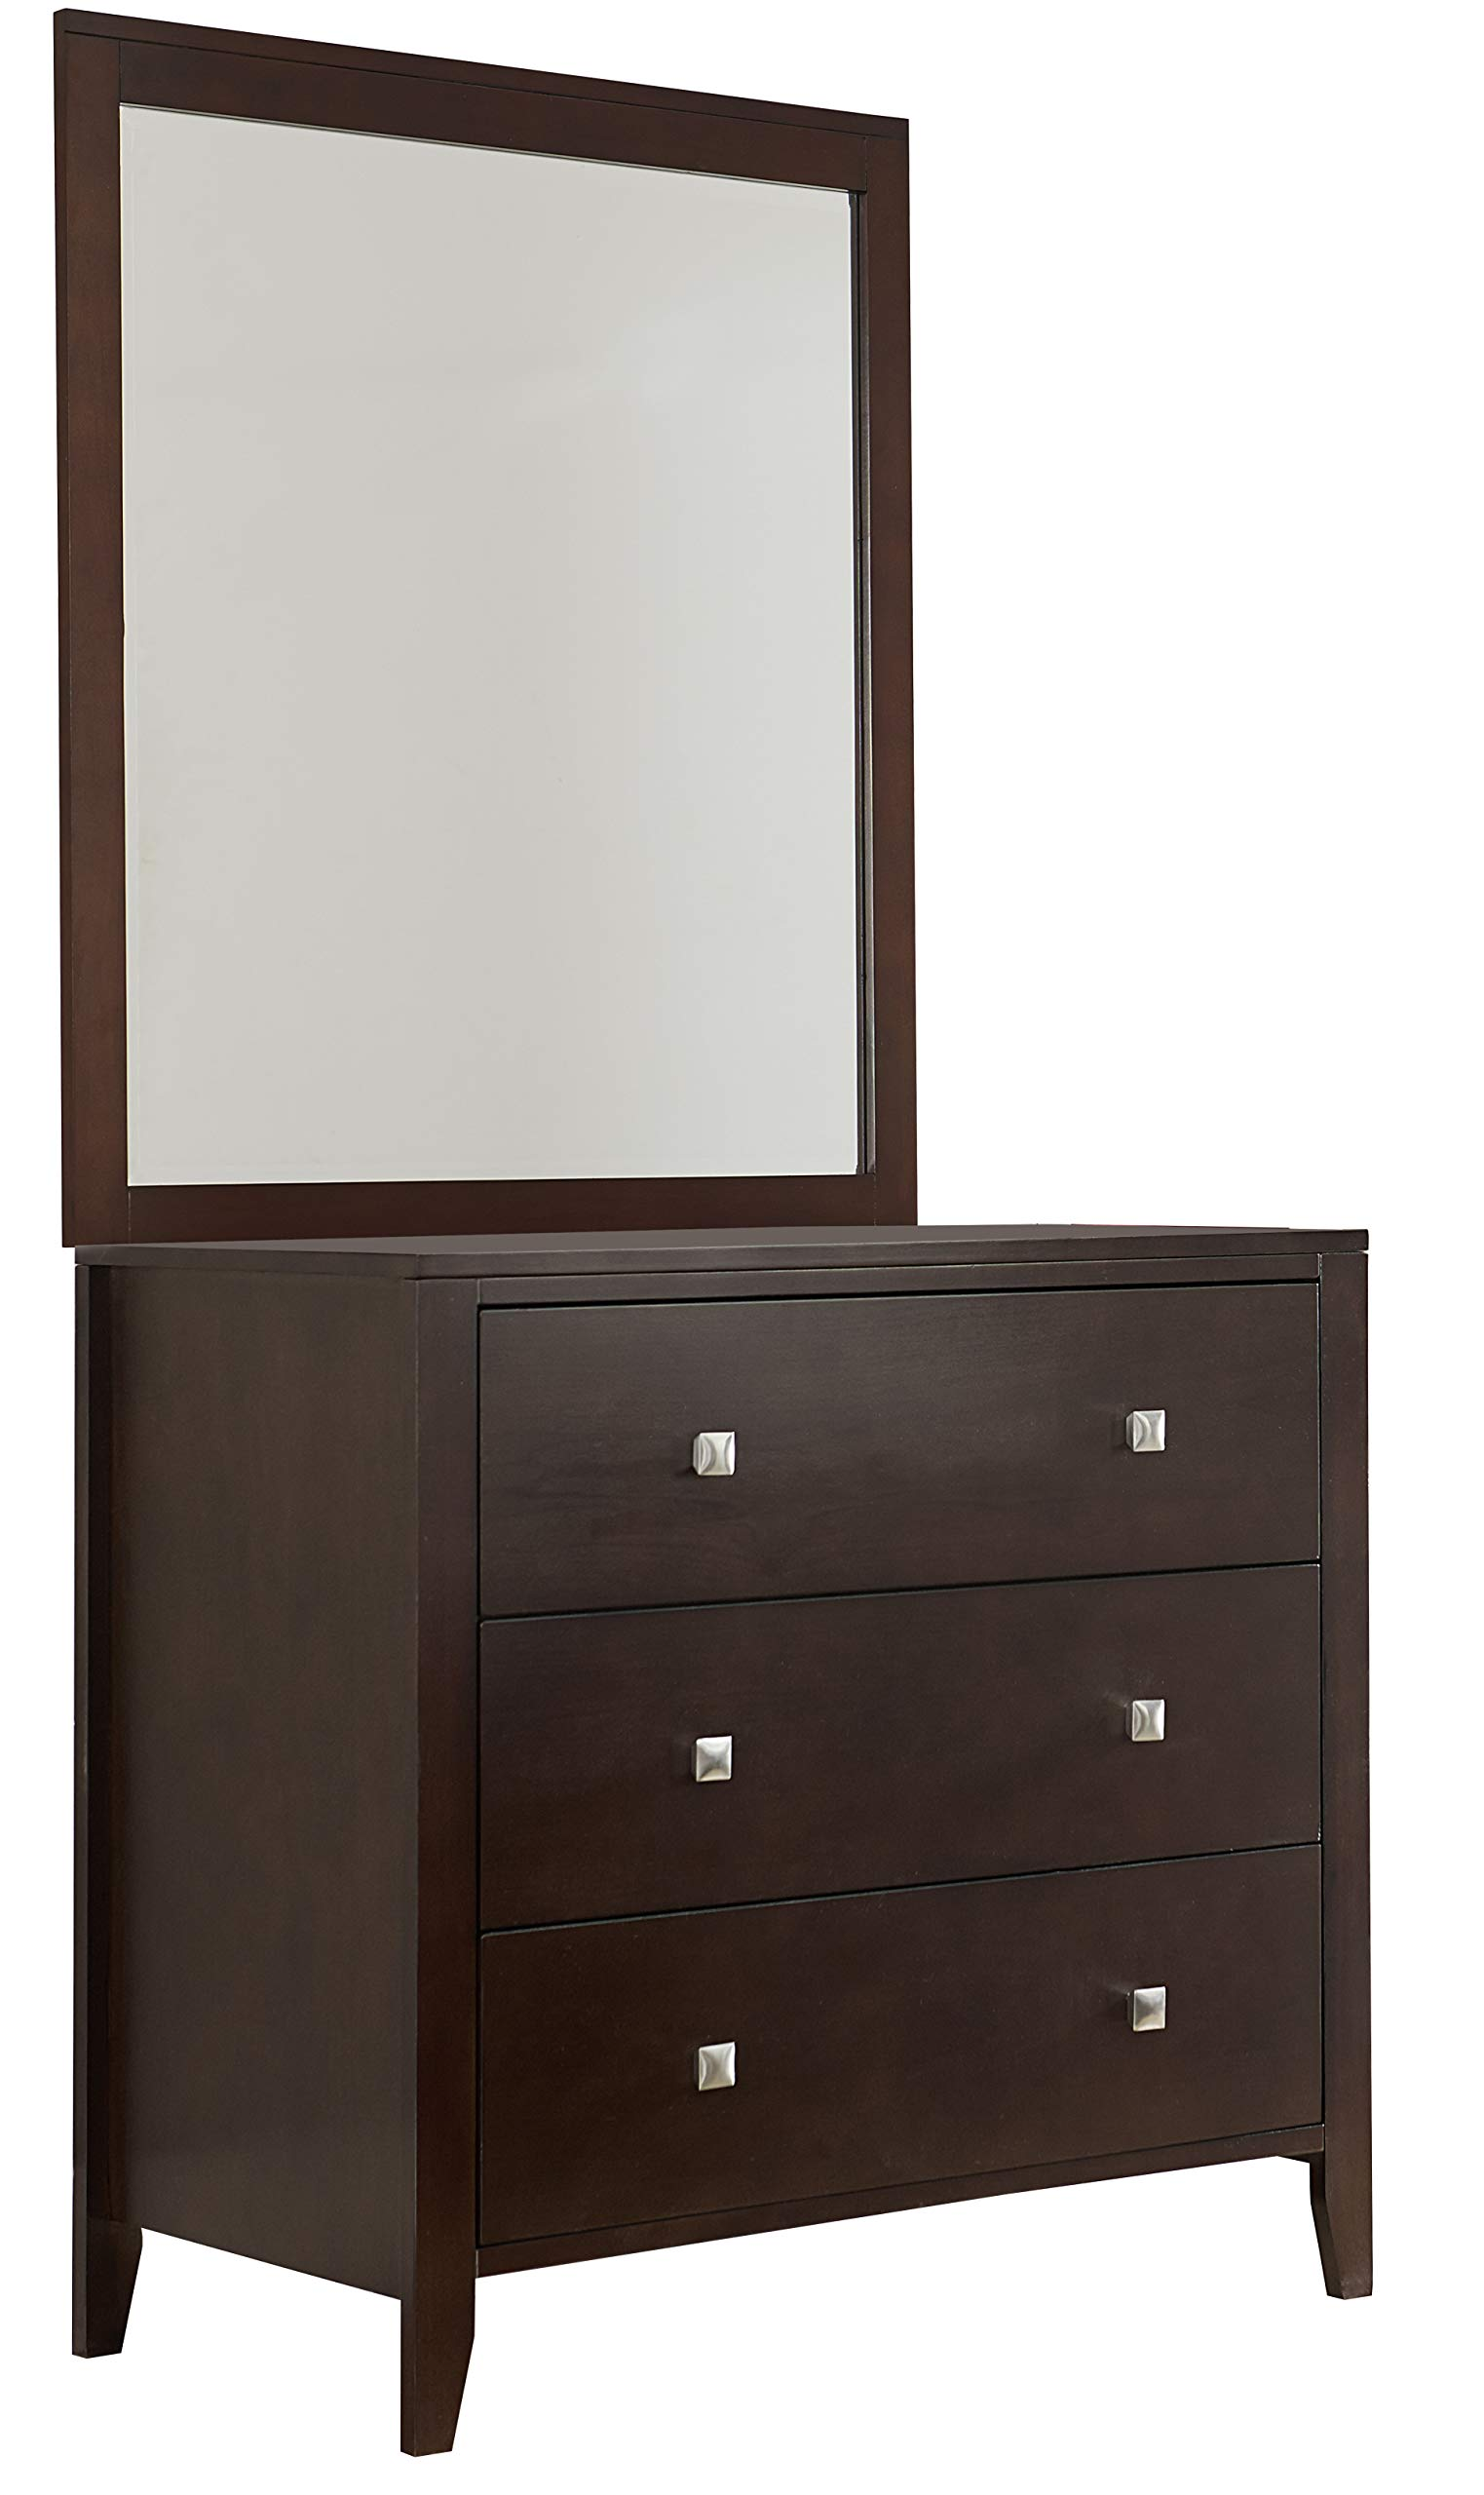 Hillsdale Furniture 32525NCM Hillsdale Kids and Teen Pulse 3 Drawer, Chocolate Chest and Mirror